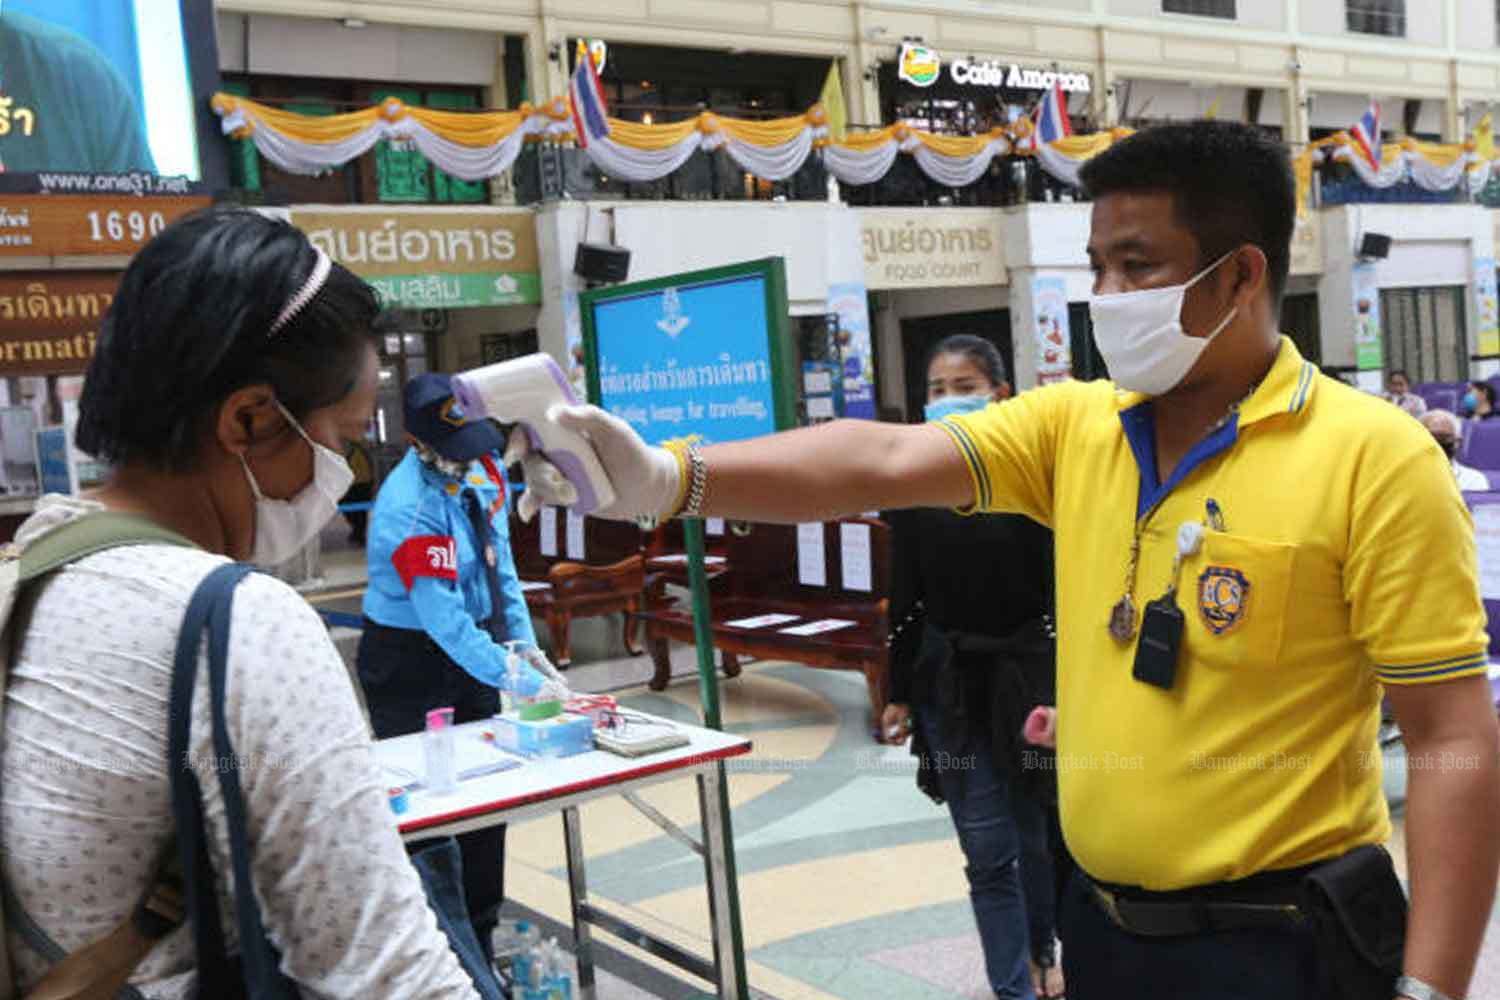 An official checks the body temperature of a traveller at the Hua Lamphong railway terminus in Bangkok on Monday as local cases of Covid-19 soared by 122. (Photo: Wichan Charoenkiatpakul)